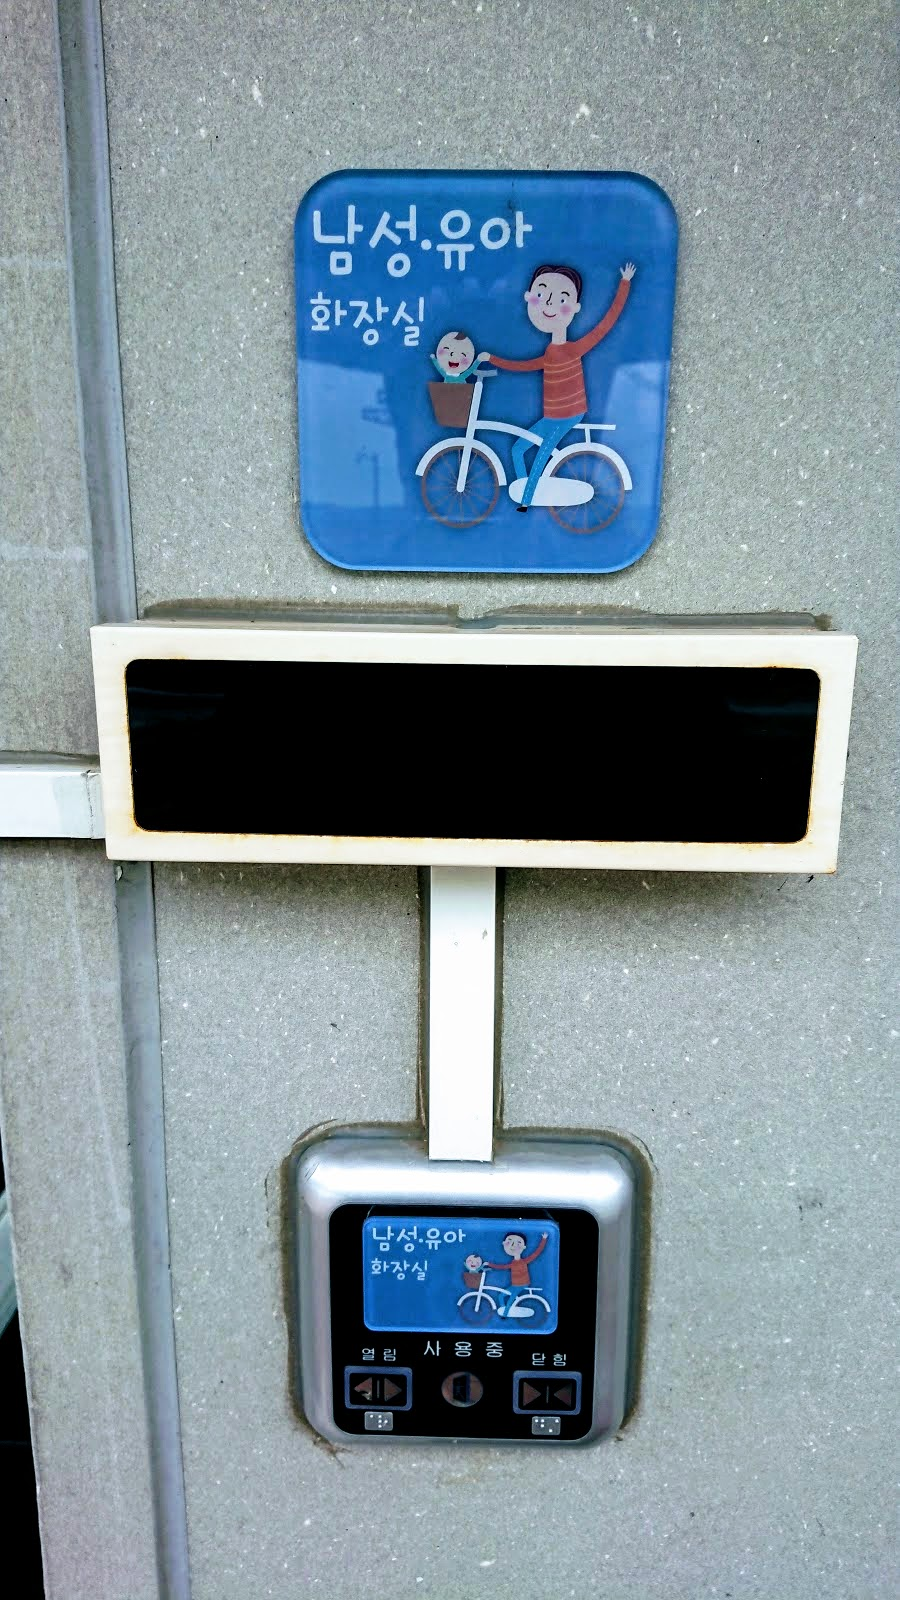 The public toilets are manned by electronic signs that allow people outside to know when they are occupied.